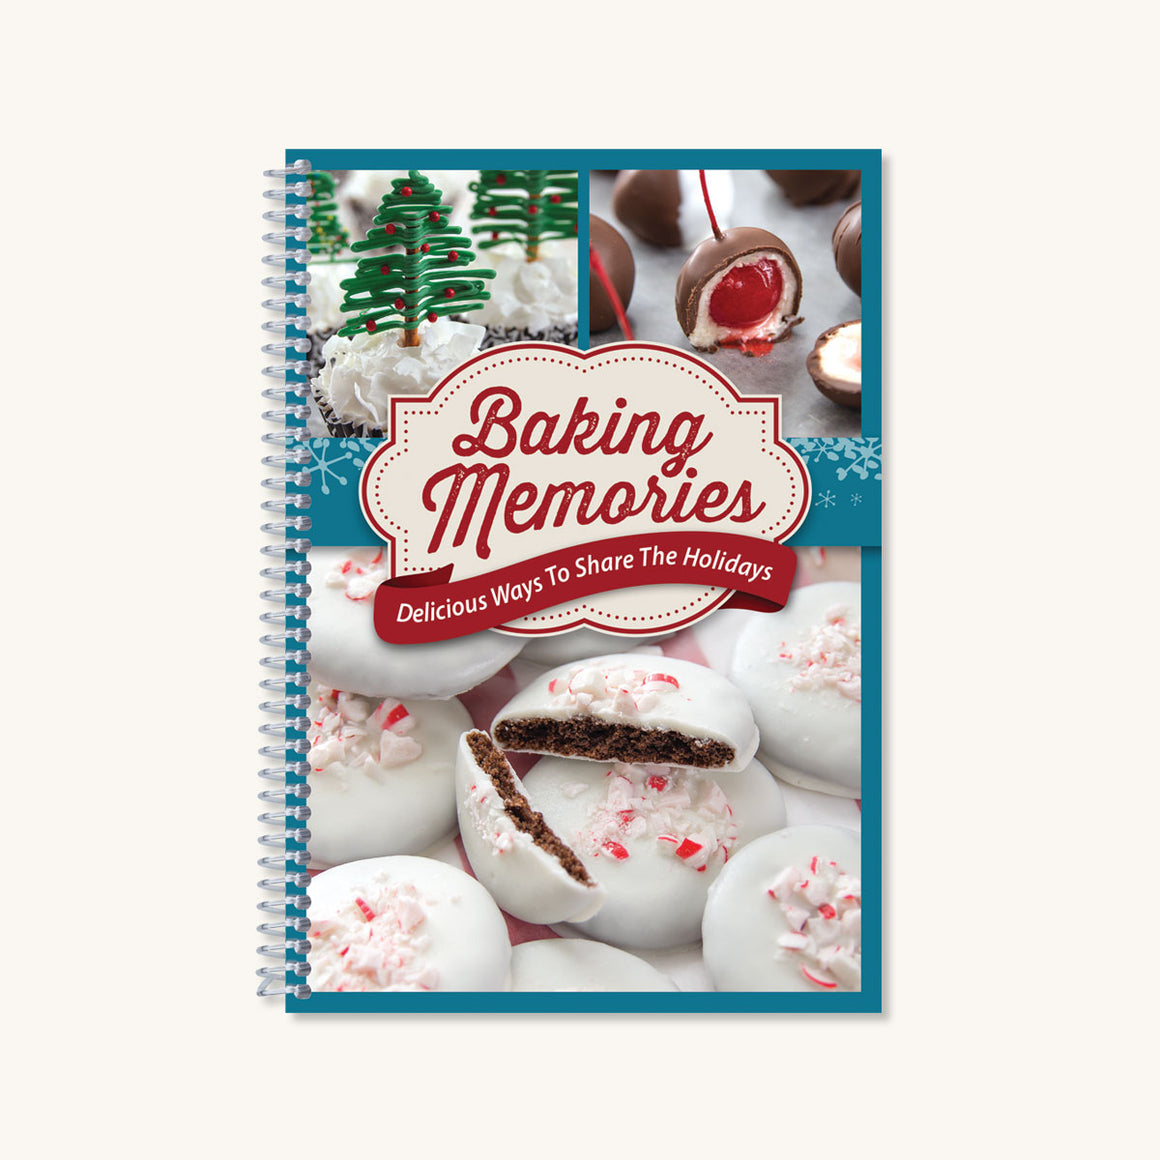 Baking Memories Cookbook